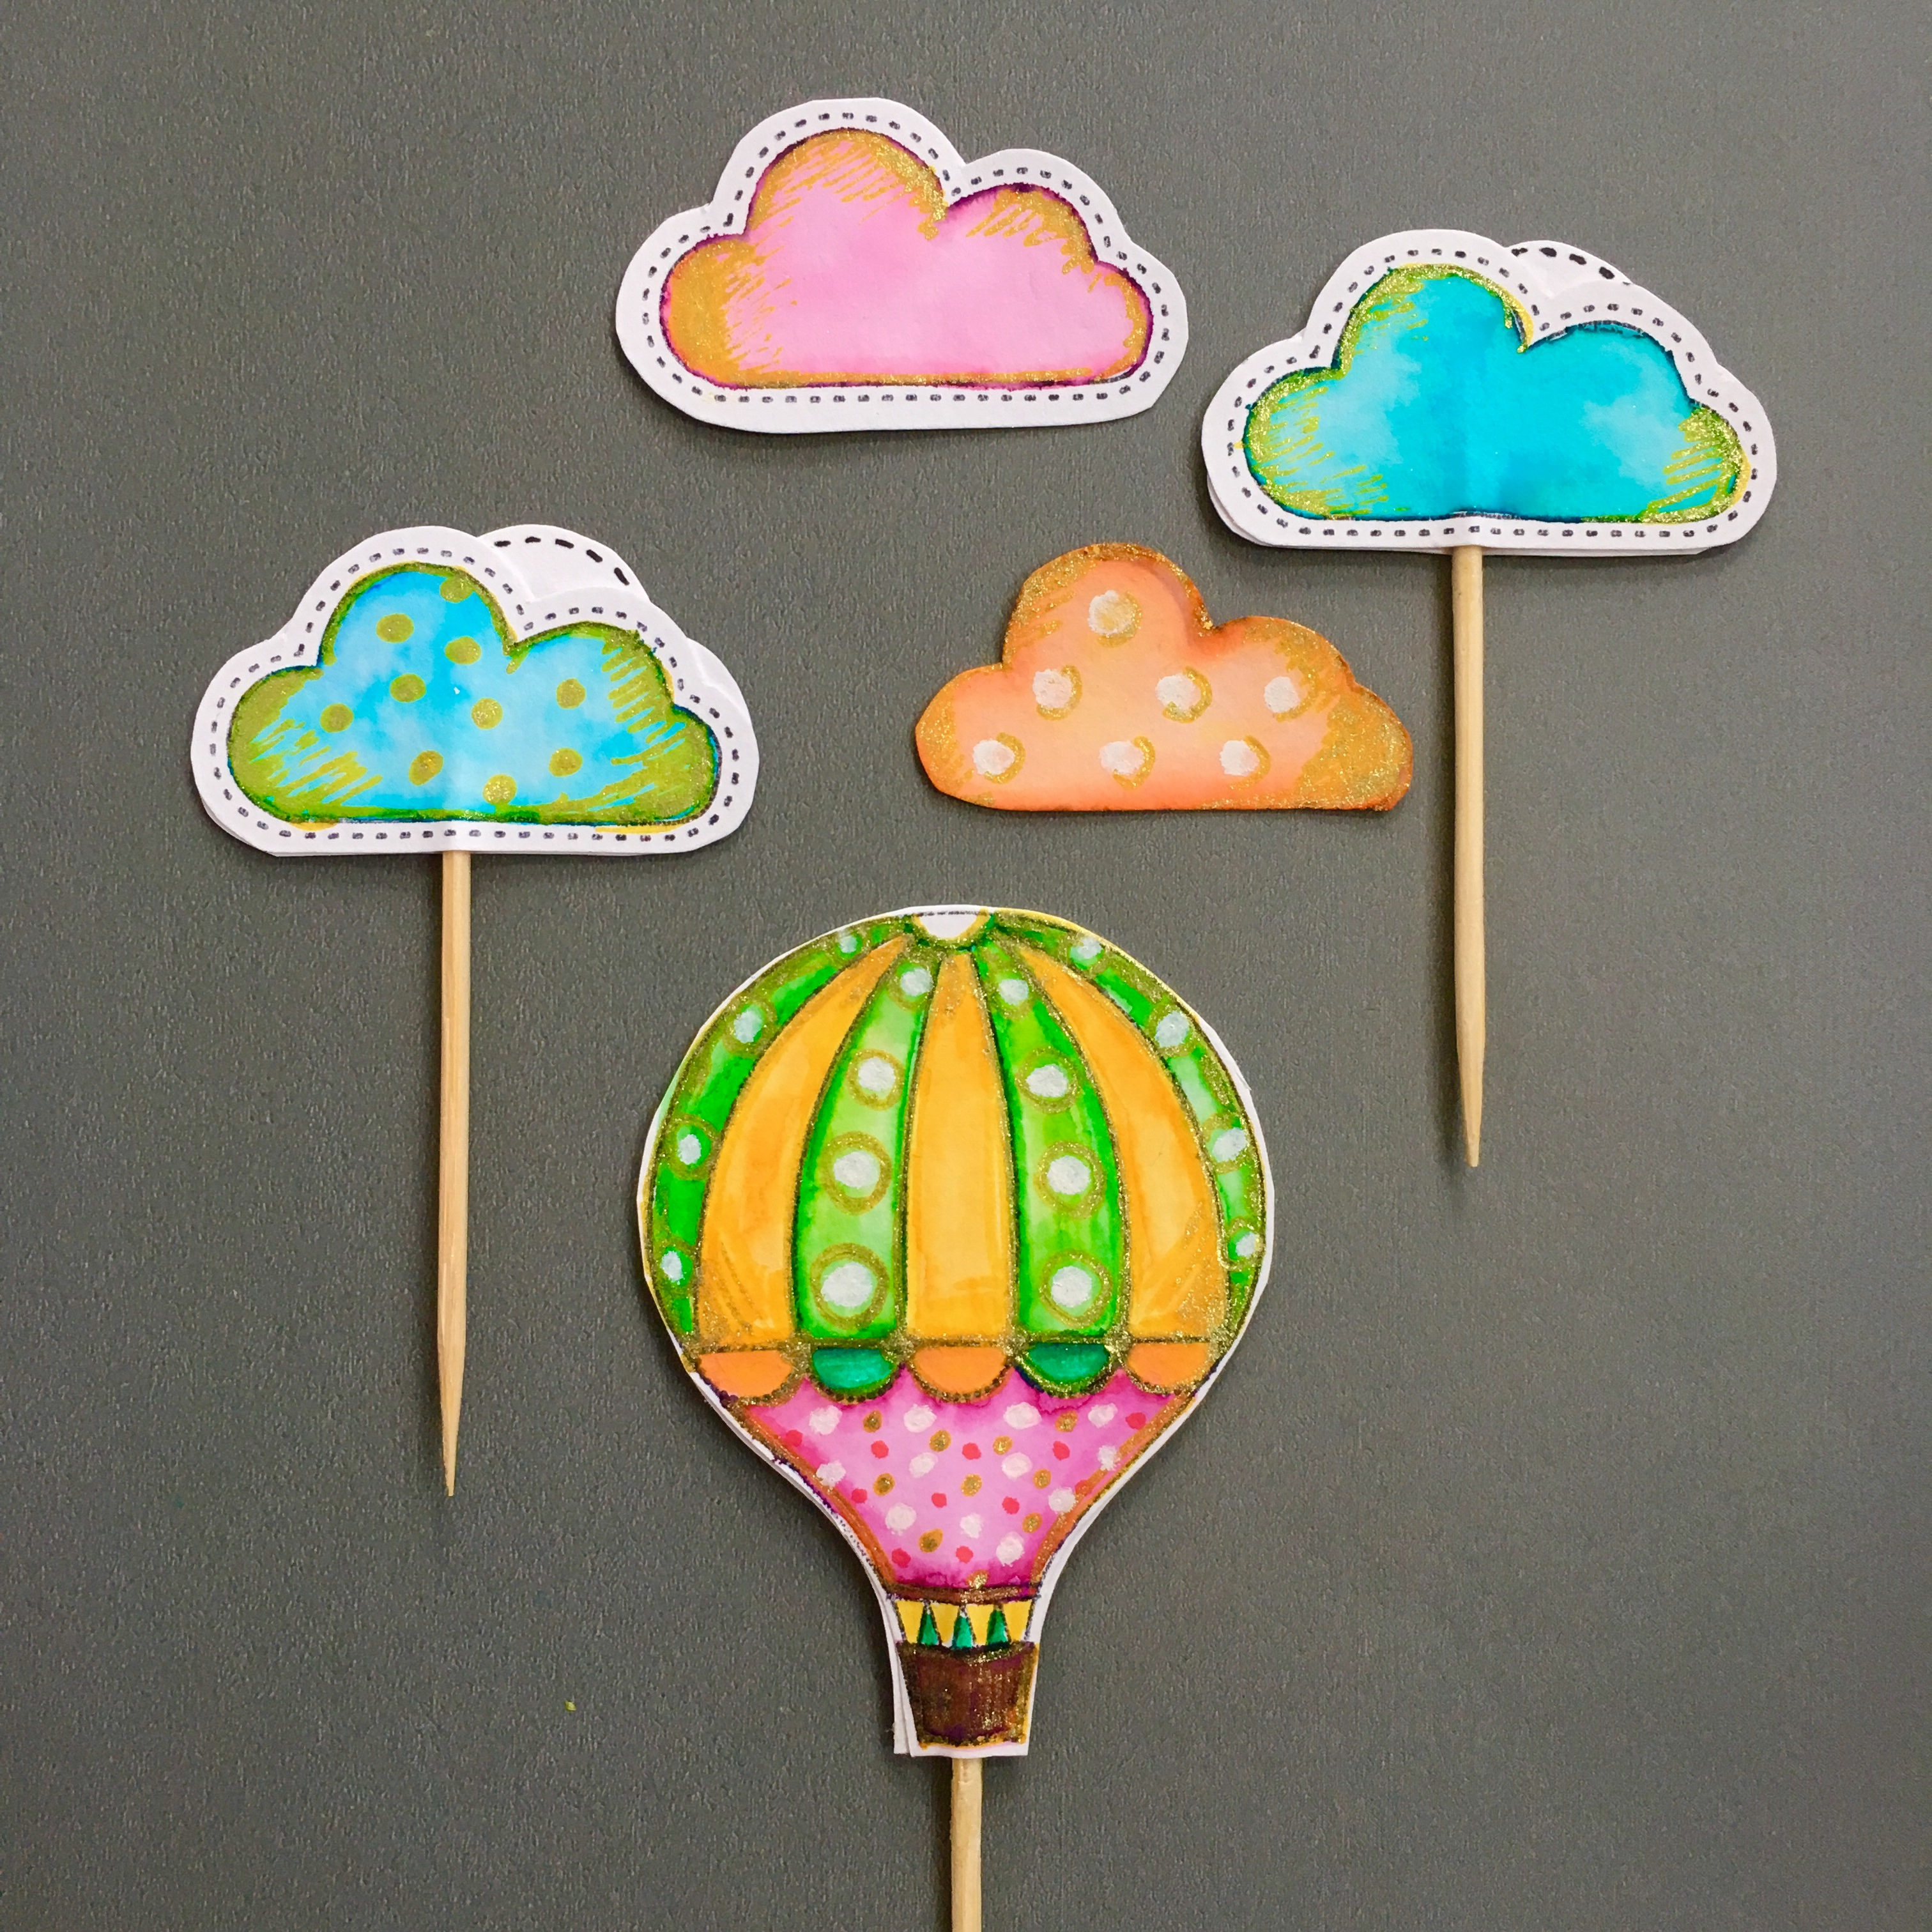 hand drawn muffin toppers - hot air balloon (green, yellow, purple, white, glitter) and clouds (blue, pink, orange, white, glitter)